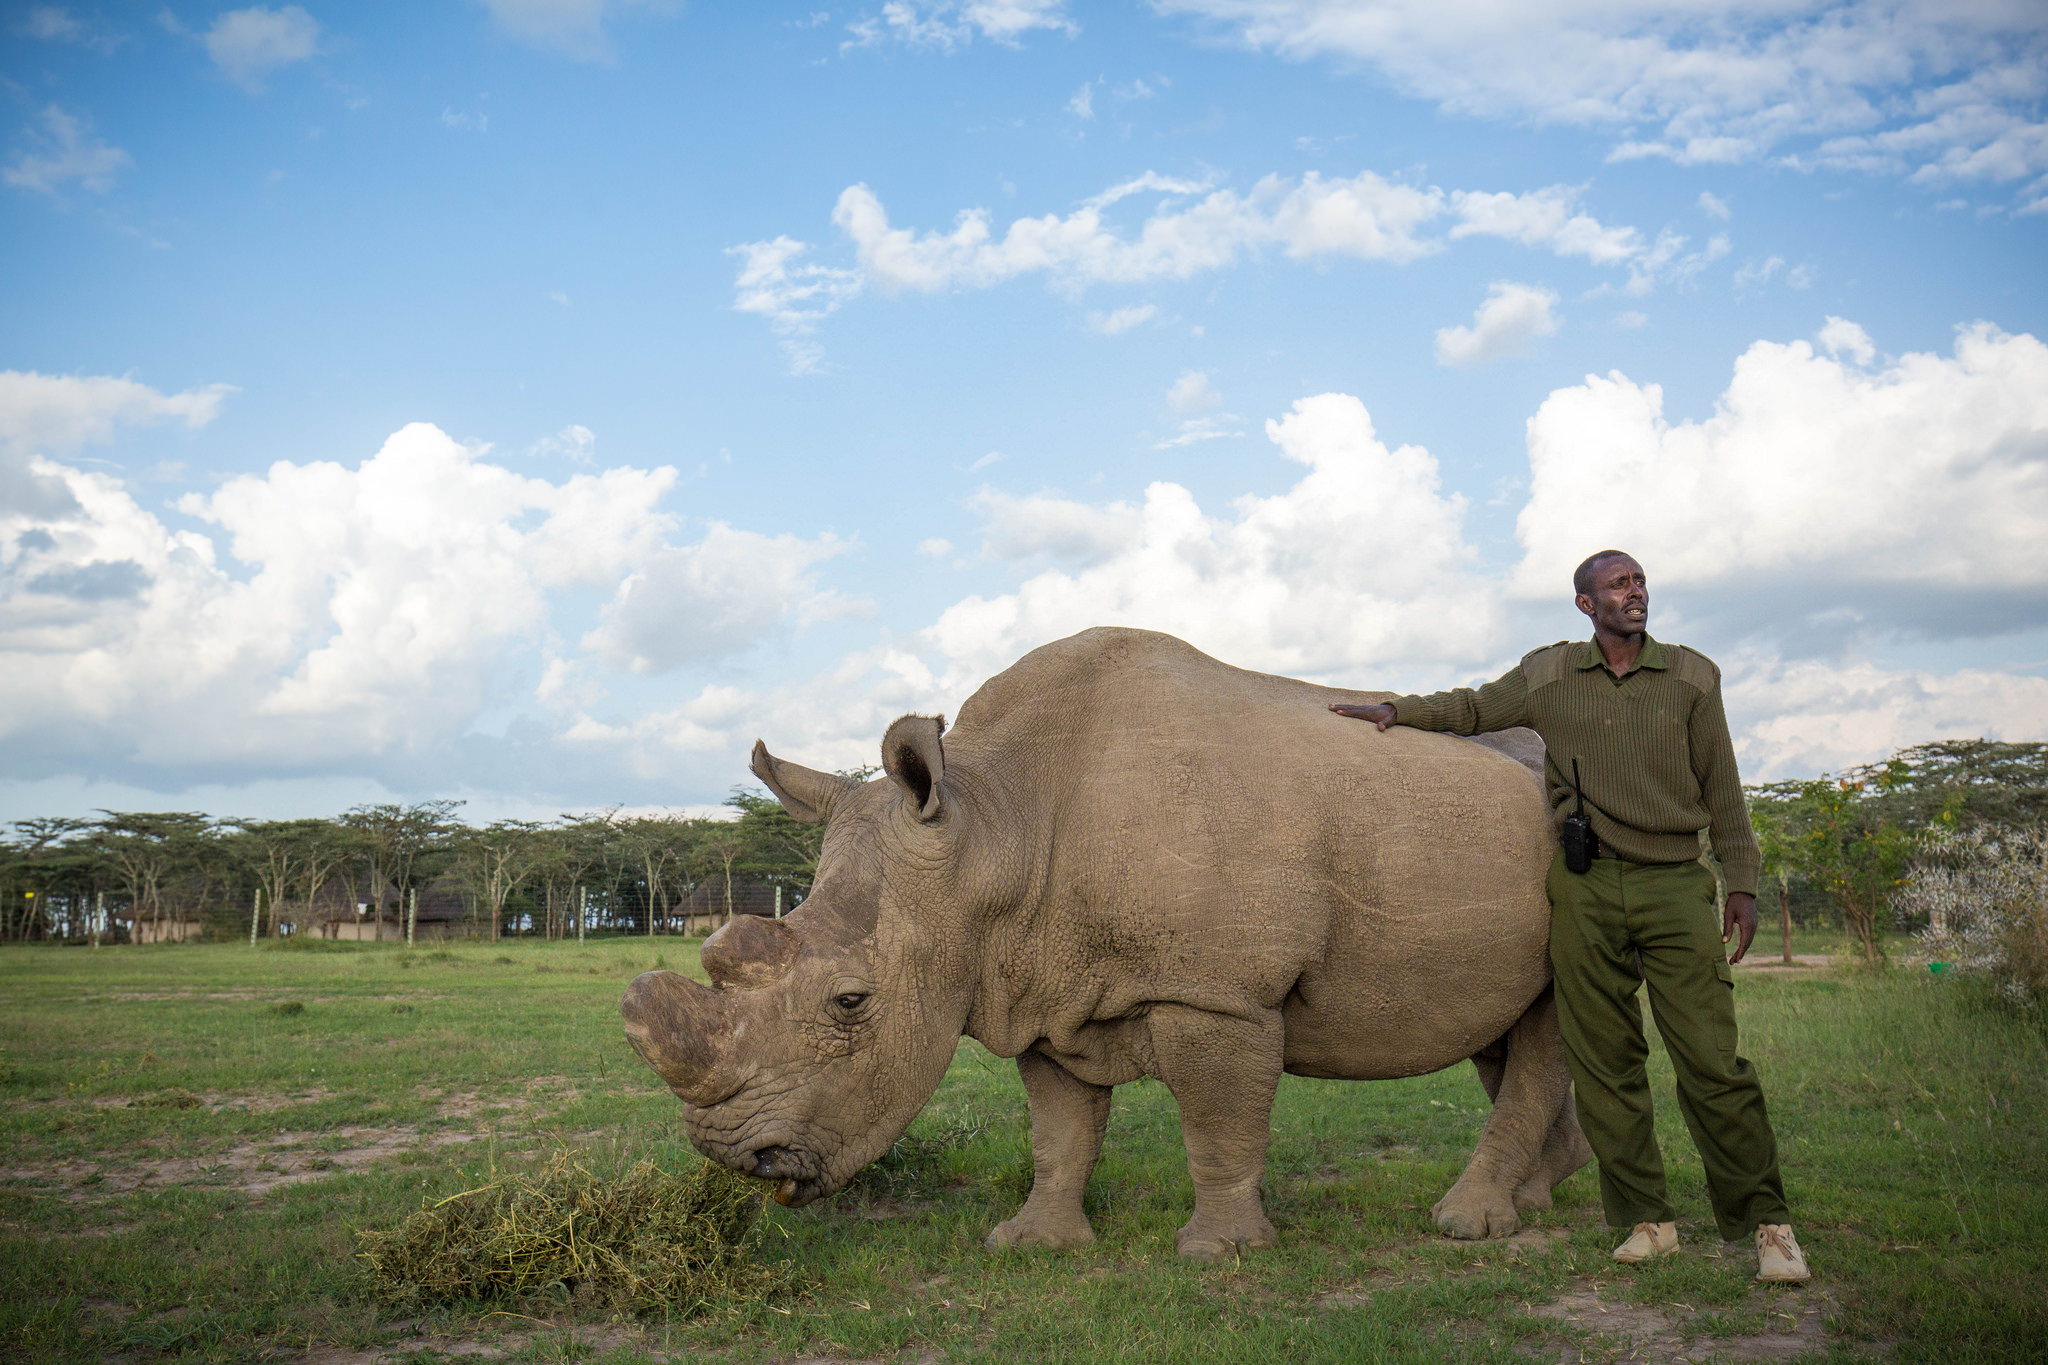 A rhino handler stands with the world's last remaining male northern white rhino in Kenya. Image by  Make it Kenya via Flickr